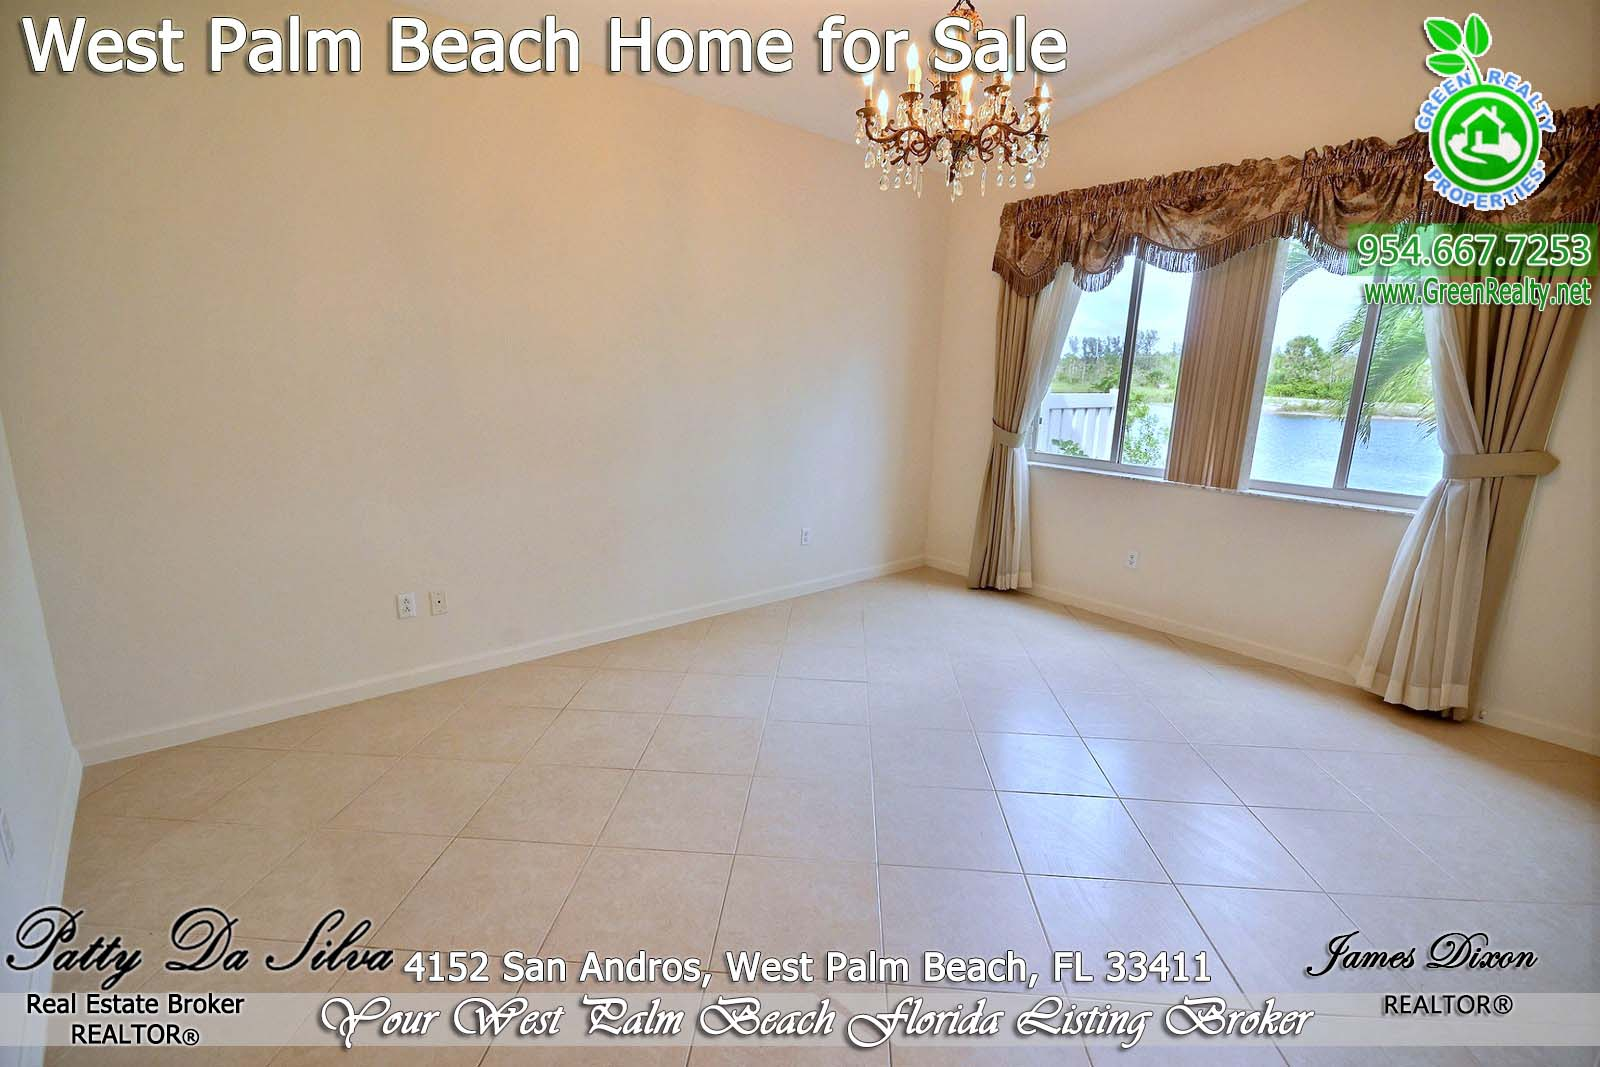 West Palm Beach Real Estate - 4152 San Andros (21)_1